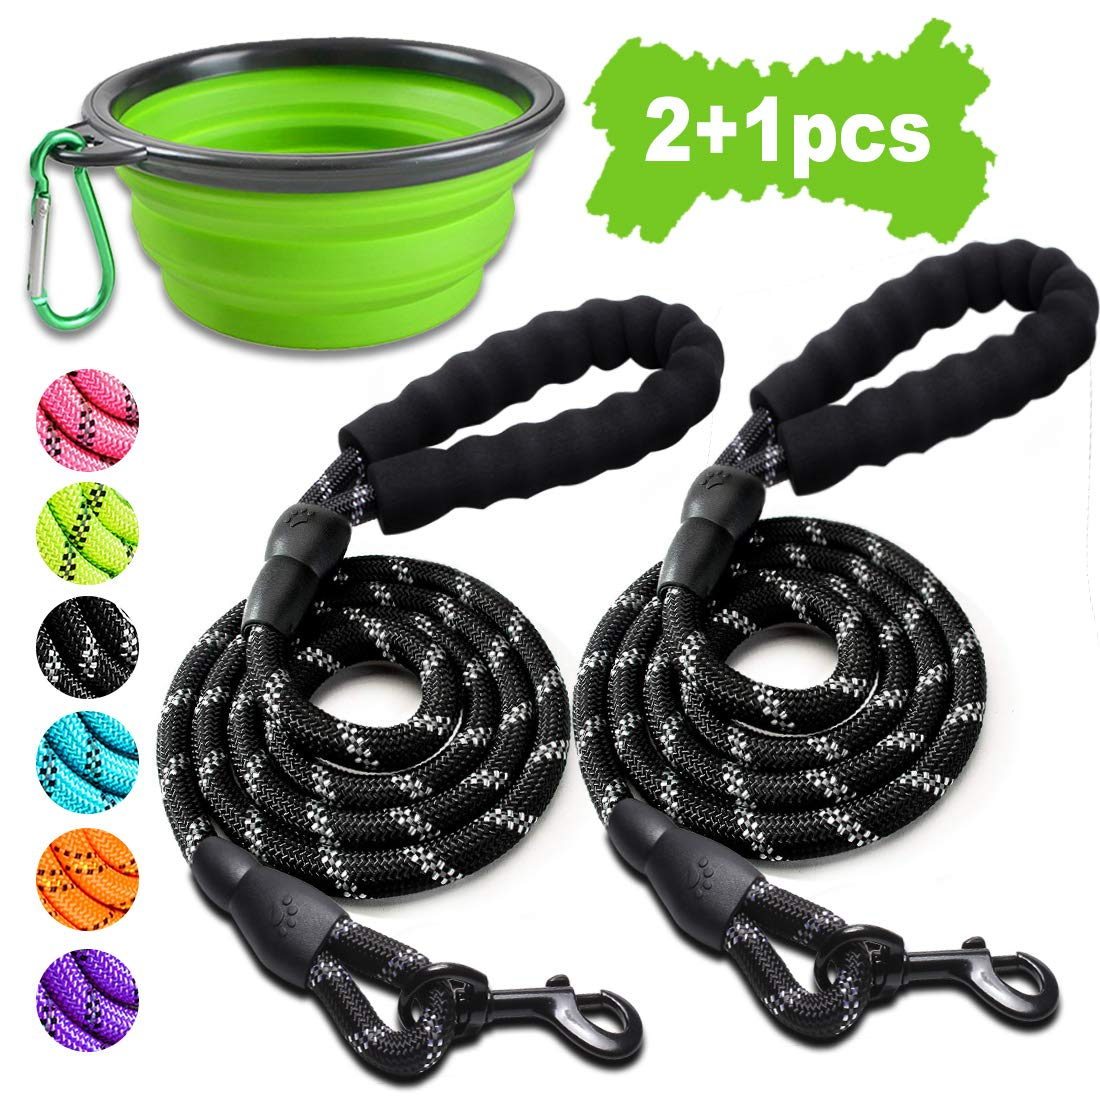 COOYOO 2 Pack Dog Leash 5 FT Heavy Duty – Comfortable Padded Handle – Reflective Dog Leash for Medium Large Dogs with…